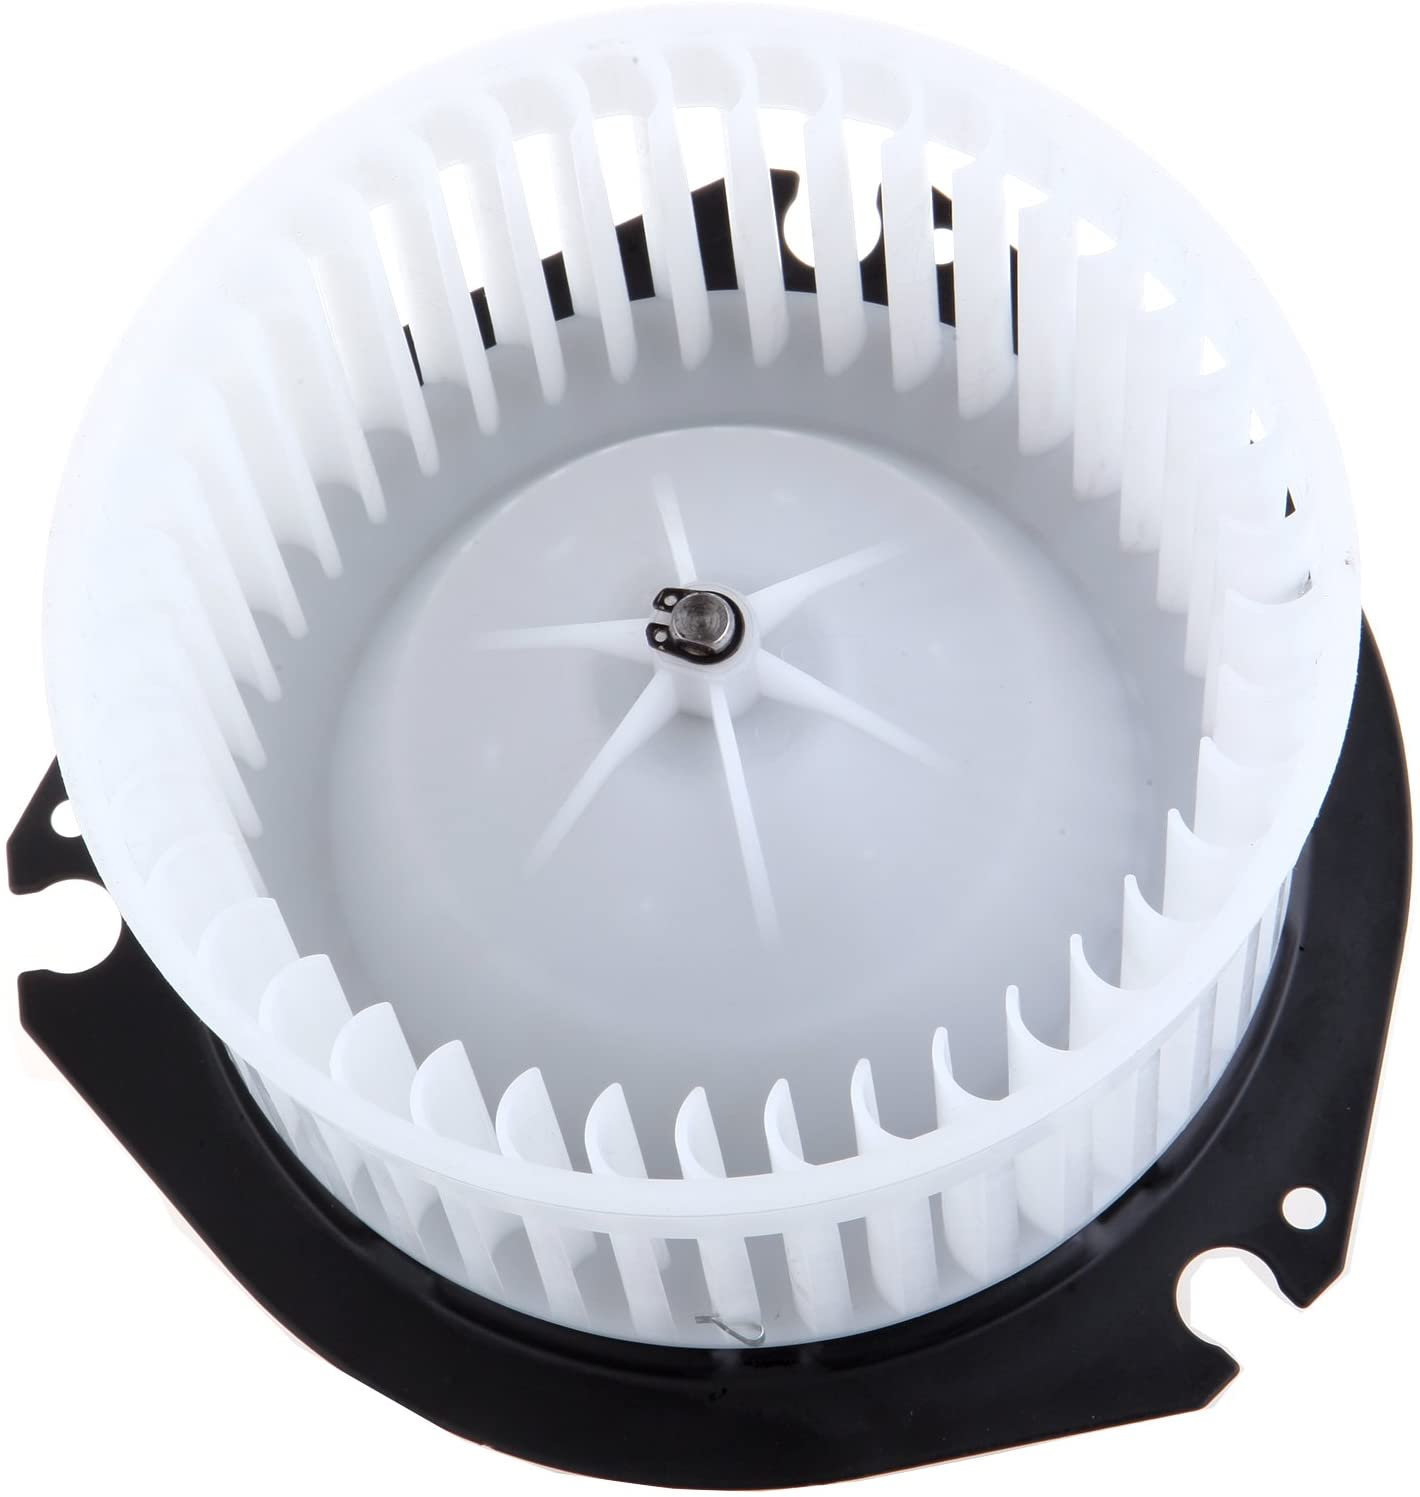 HVAC Plastic Heater Blower Motor ABS w/Fan Cage ECCPP fit for 2003-2013 Chevy Express 1500/1996-2002 Chevy Express 1500/1996-2002 Chevy Express 2500